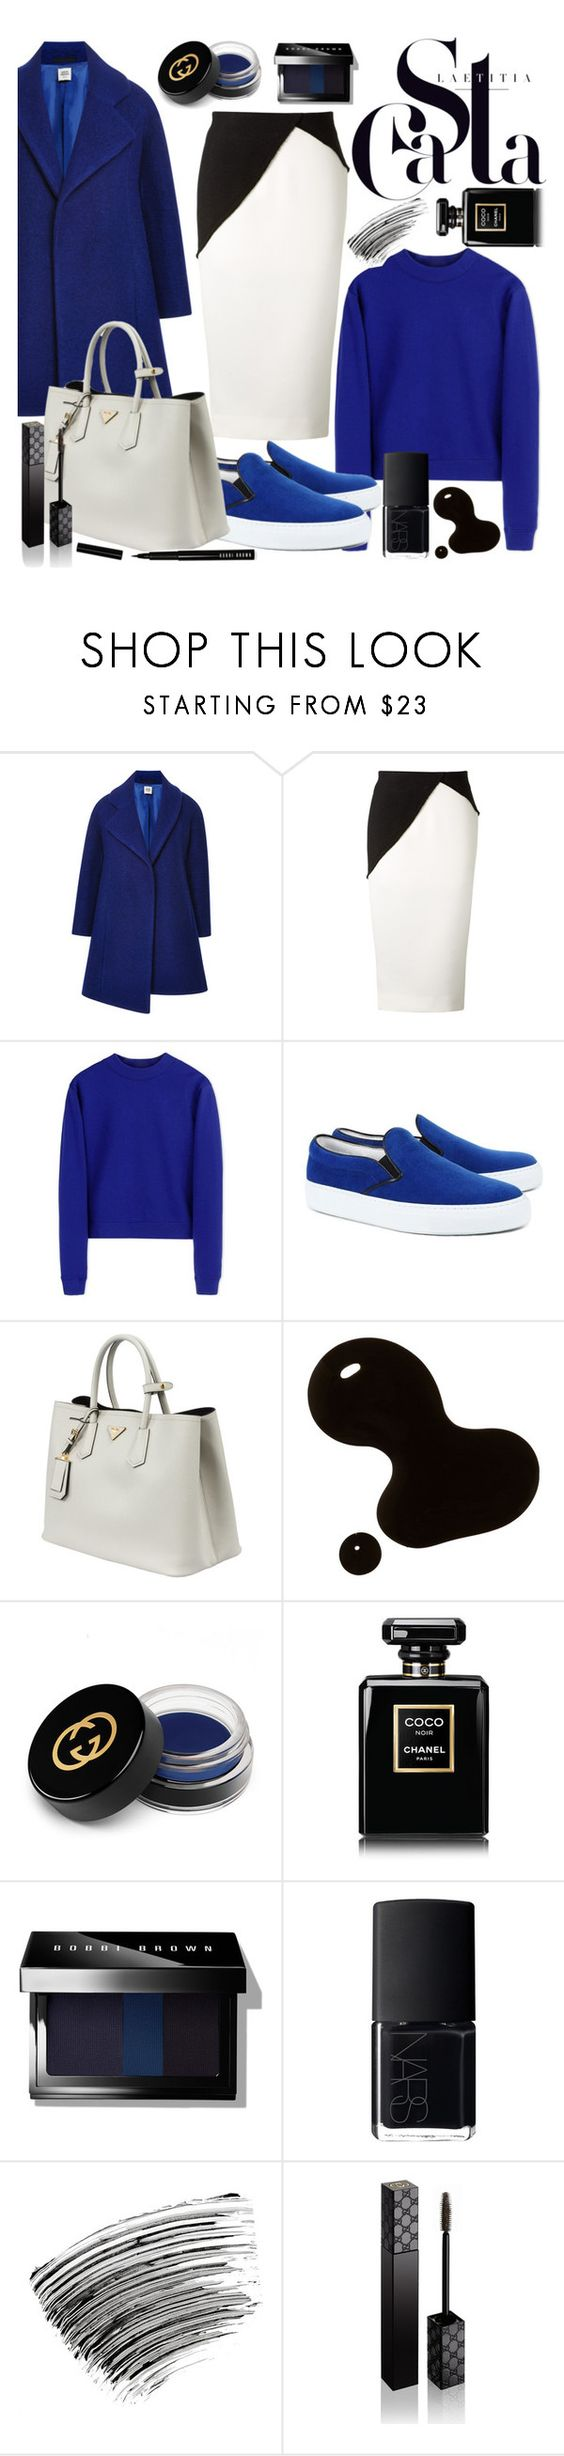 """Royal blue"" by thysania ❤ liked on Polyvore featuring Opening Ceremony, Victoria Beckham, Acne Studios, Amb Ambassadors of minimalism, Prada, Gucci, Chanel, Bobbi Brown Cosmetics, NARS Cosmetics and Blue"